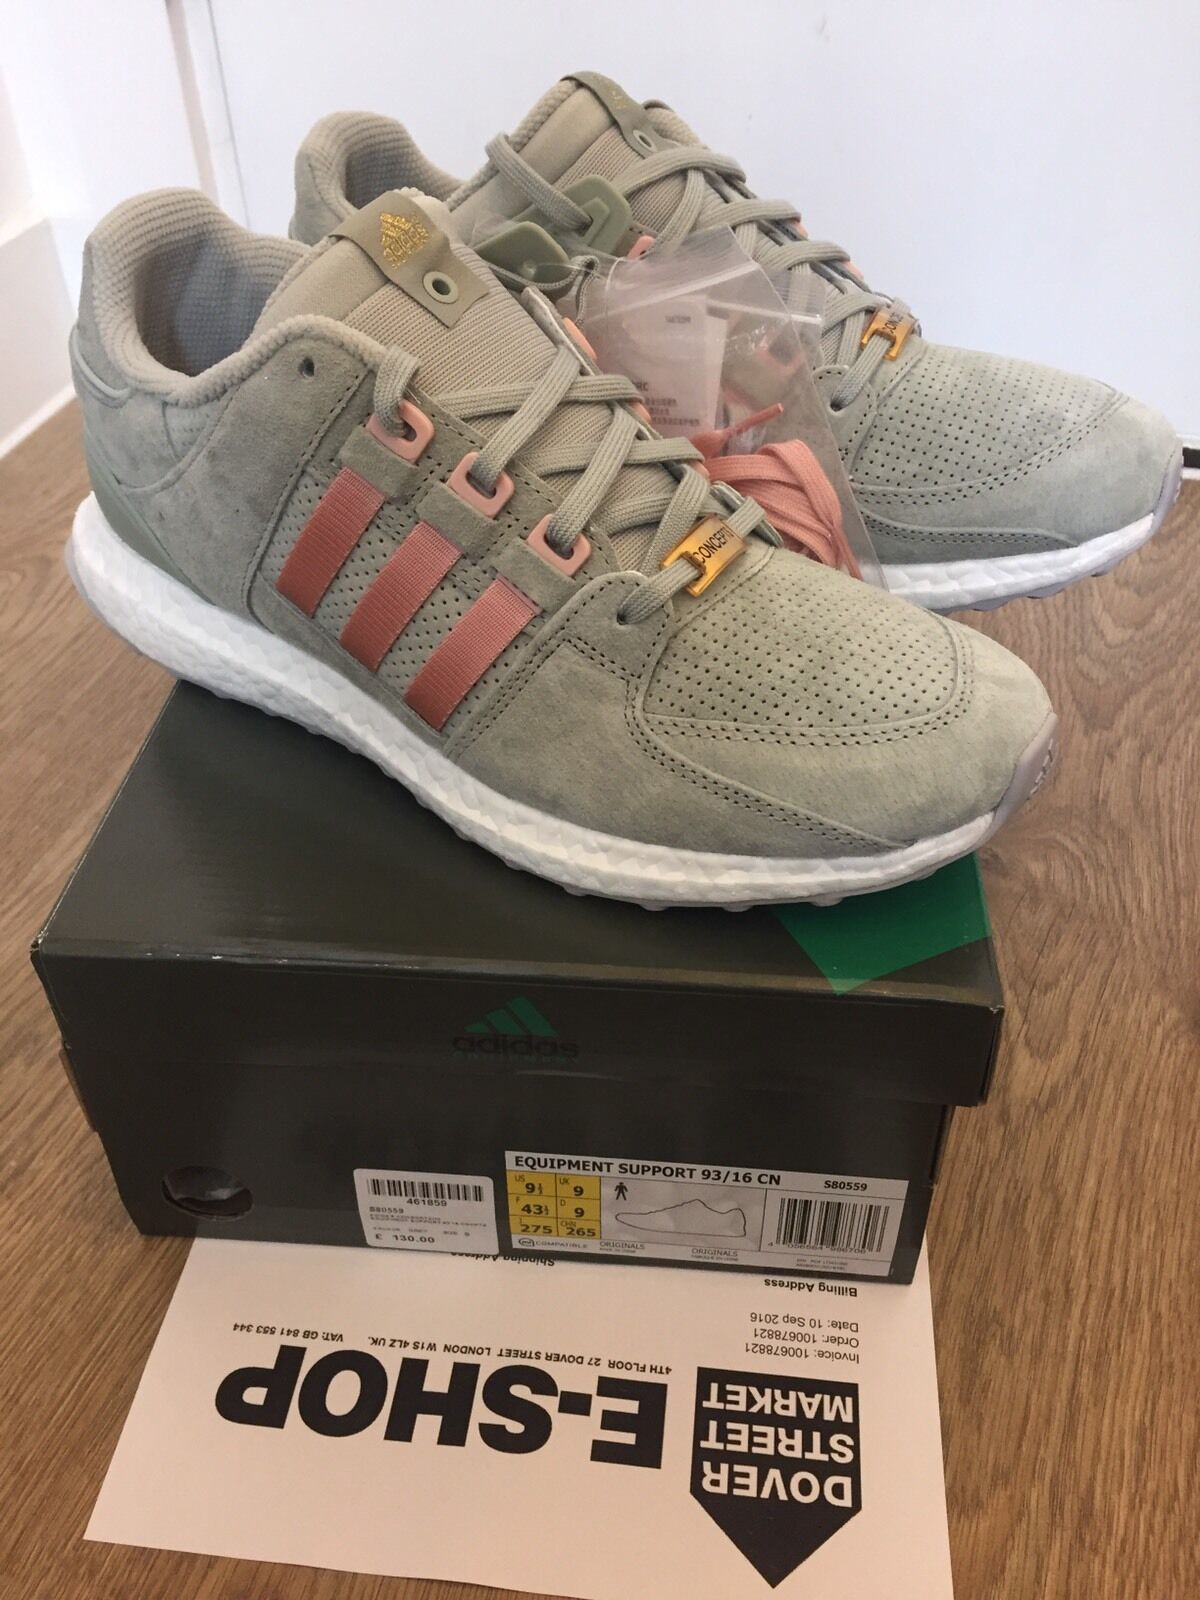 outlet store 5a95d ac40f ADIDAS ADIDAS ADIDAS CONSORTIUM X CONCEPTS EQT SUPPORT 93 16 Sage UK9 573303